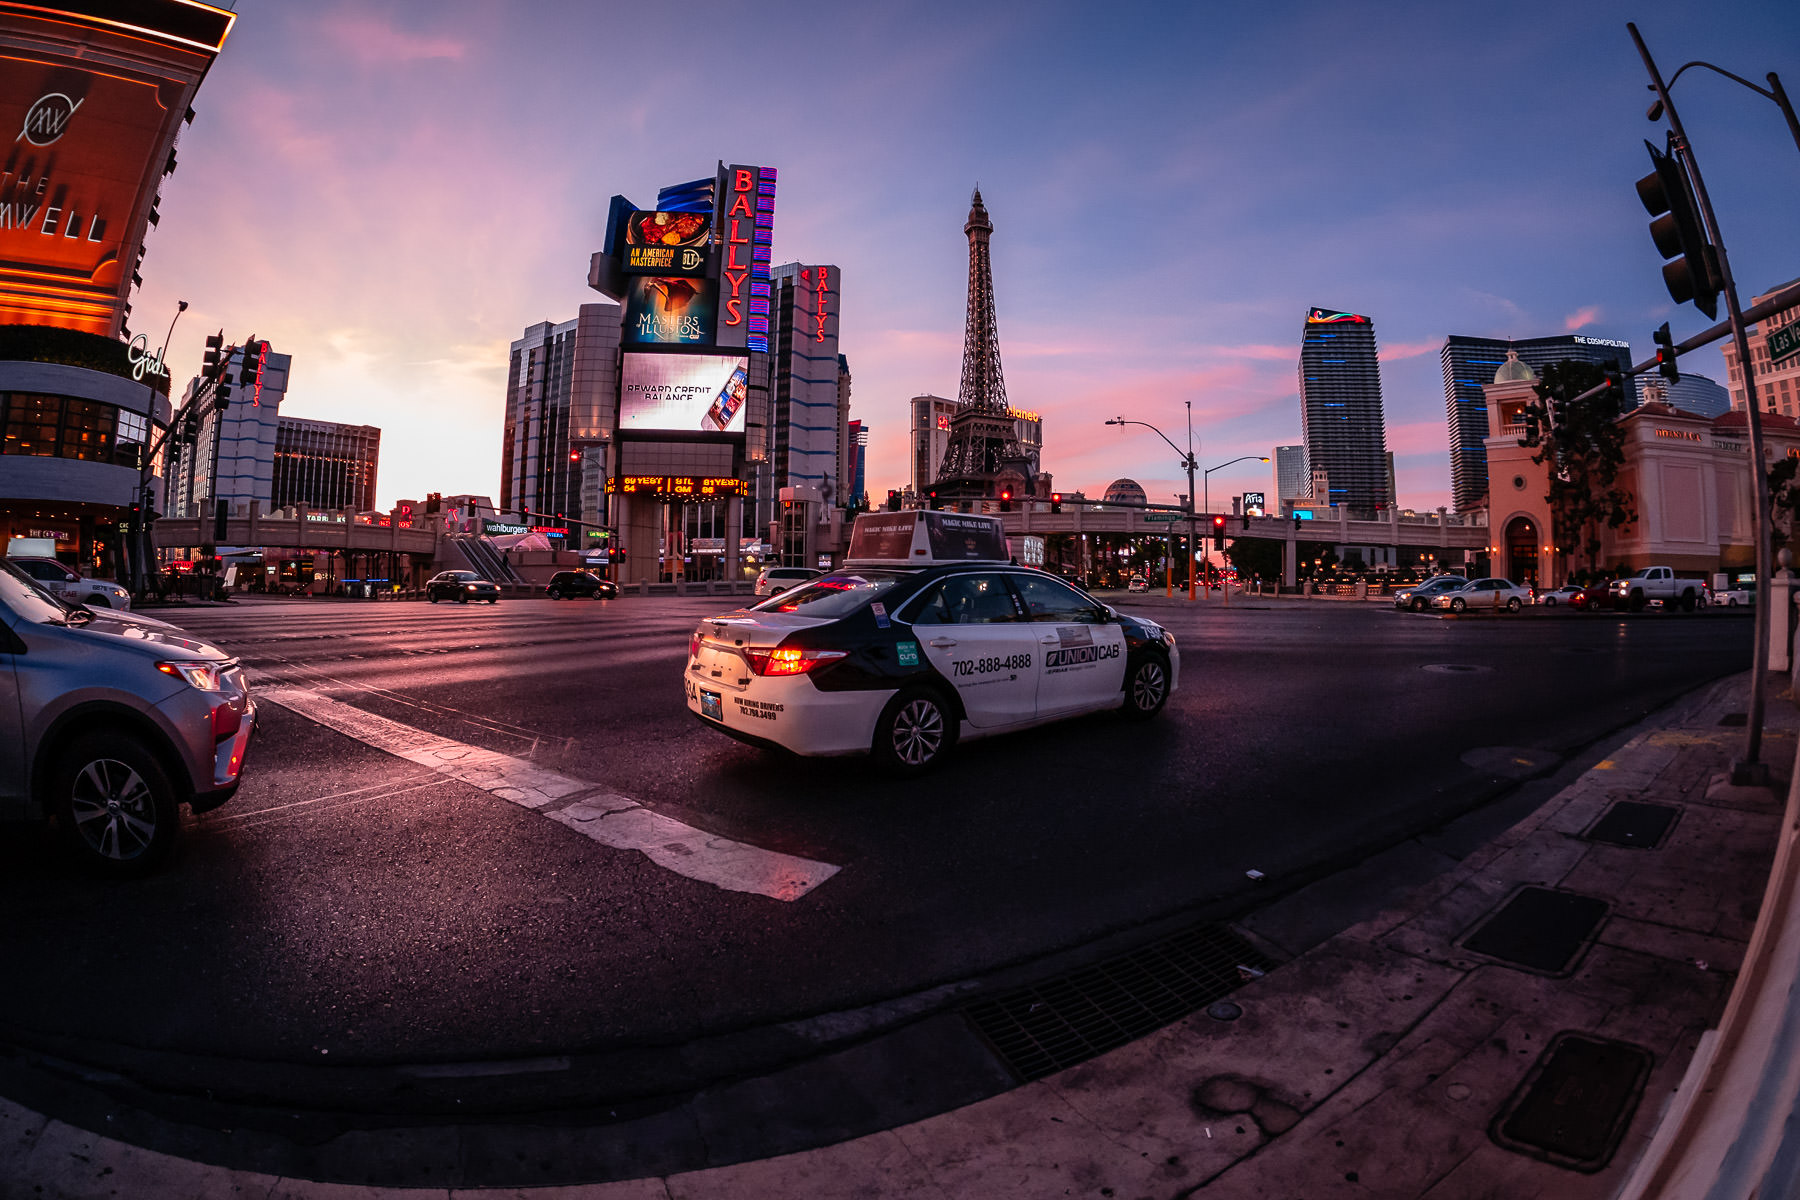 A taxi waits at a traffic light as the sun begins to rise on the Las Vegas Strip.